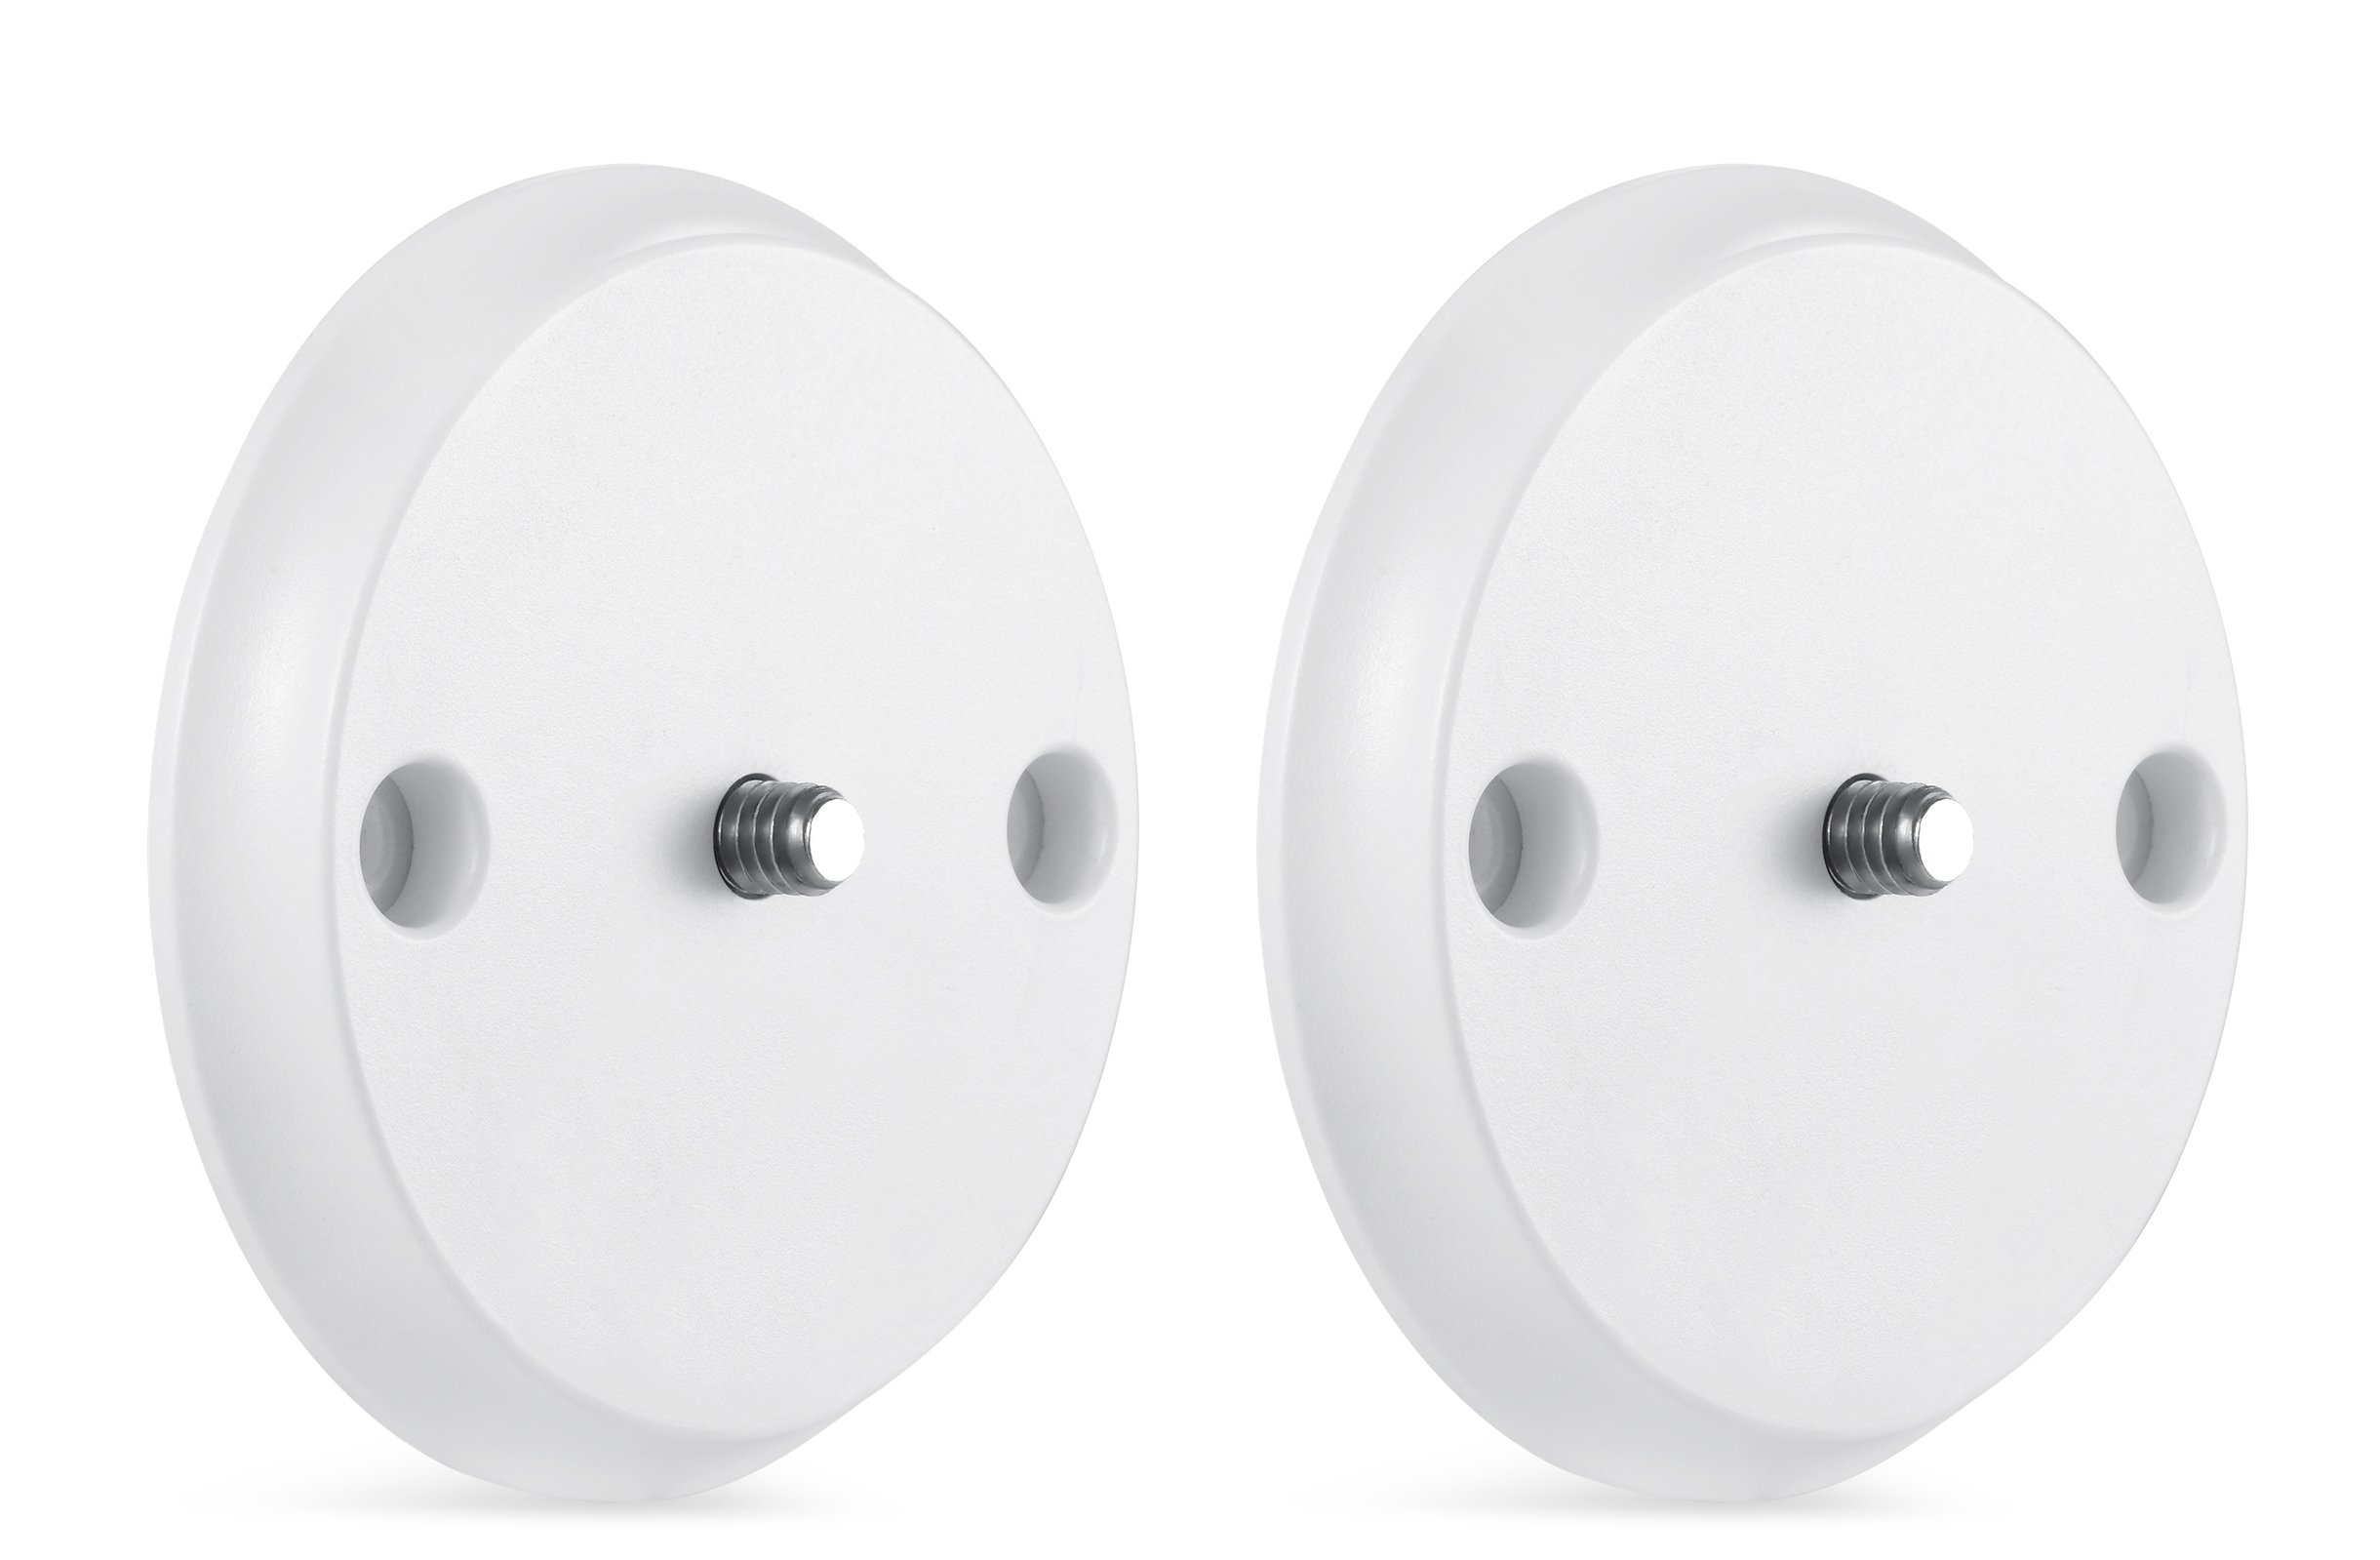 Wall Mount for Nest Cam IQ - Mount Nest IQ with Screws onto Any Wall or Use the Strong Magnet to Mount the Camera onto Any Metallic Surface Without Tools or Wall Damage -by Wasserstein (2 Pack, White) by Wasserstein